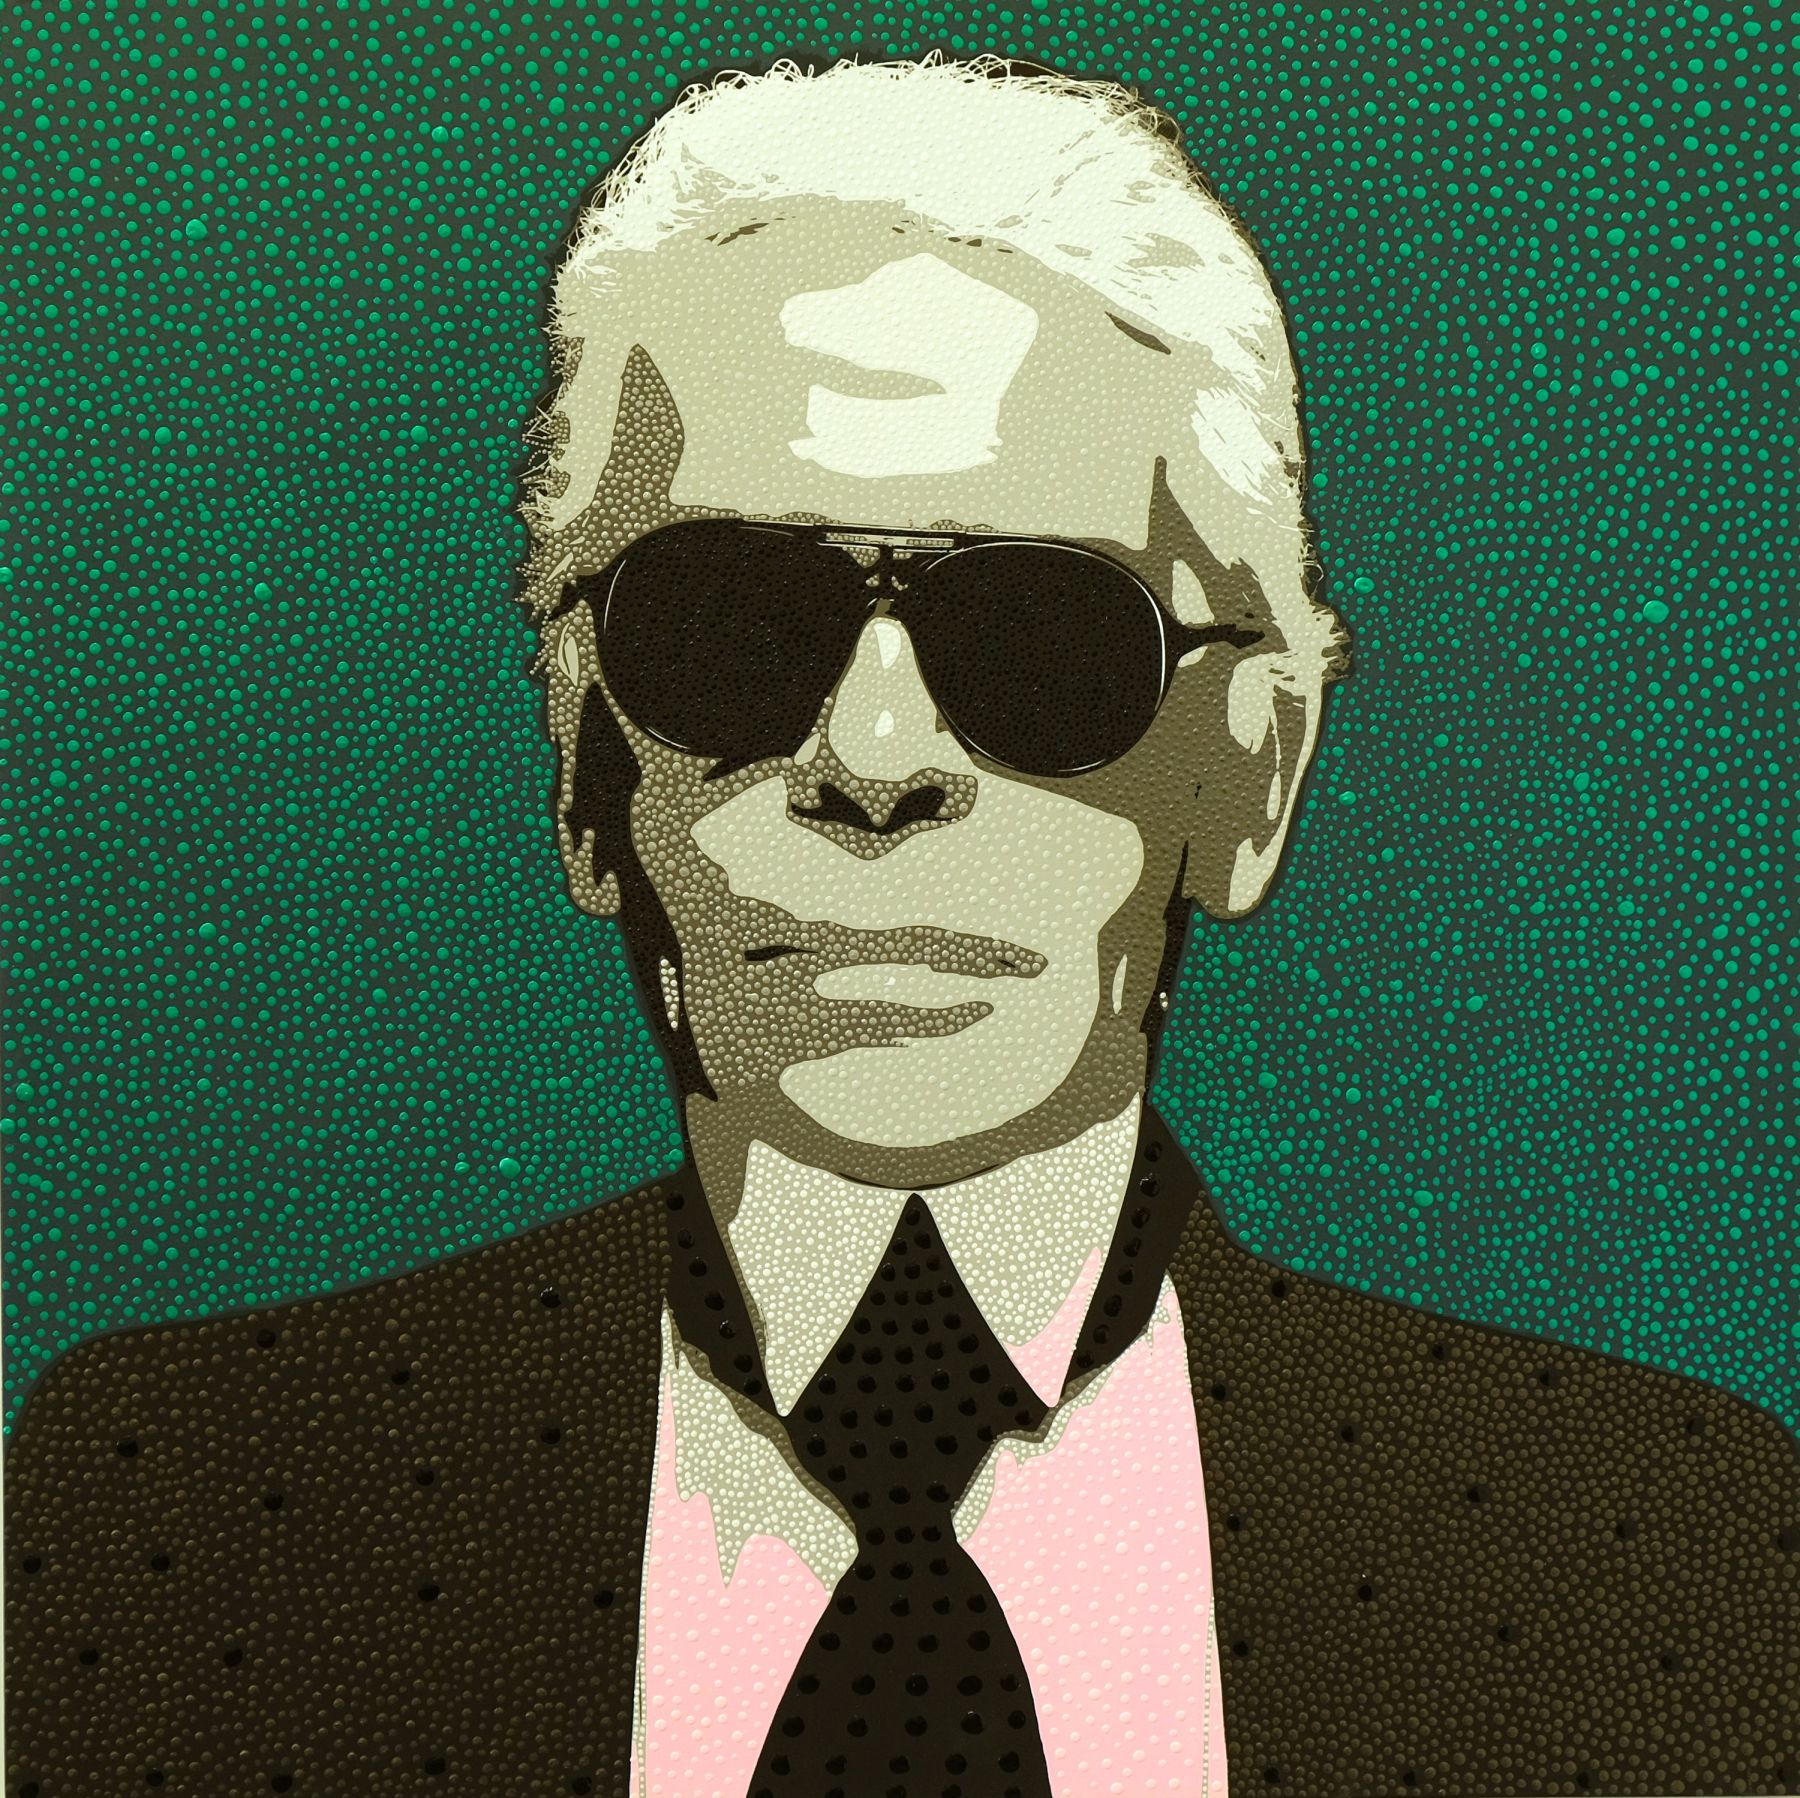 Karl Lagerfeld by Philip Tsiaras at HG Contemporary founded by Philippe Hoerle-Guggenheim